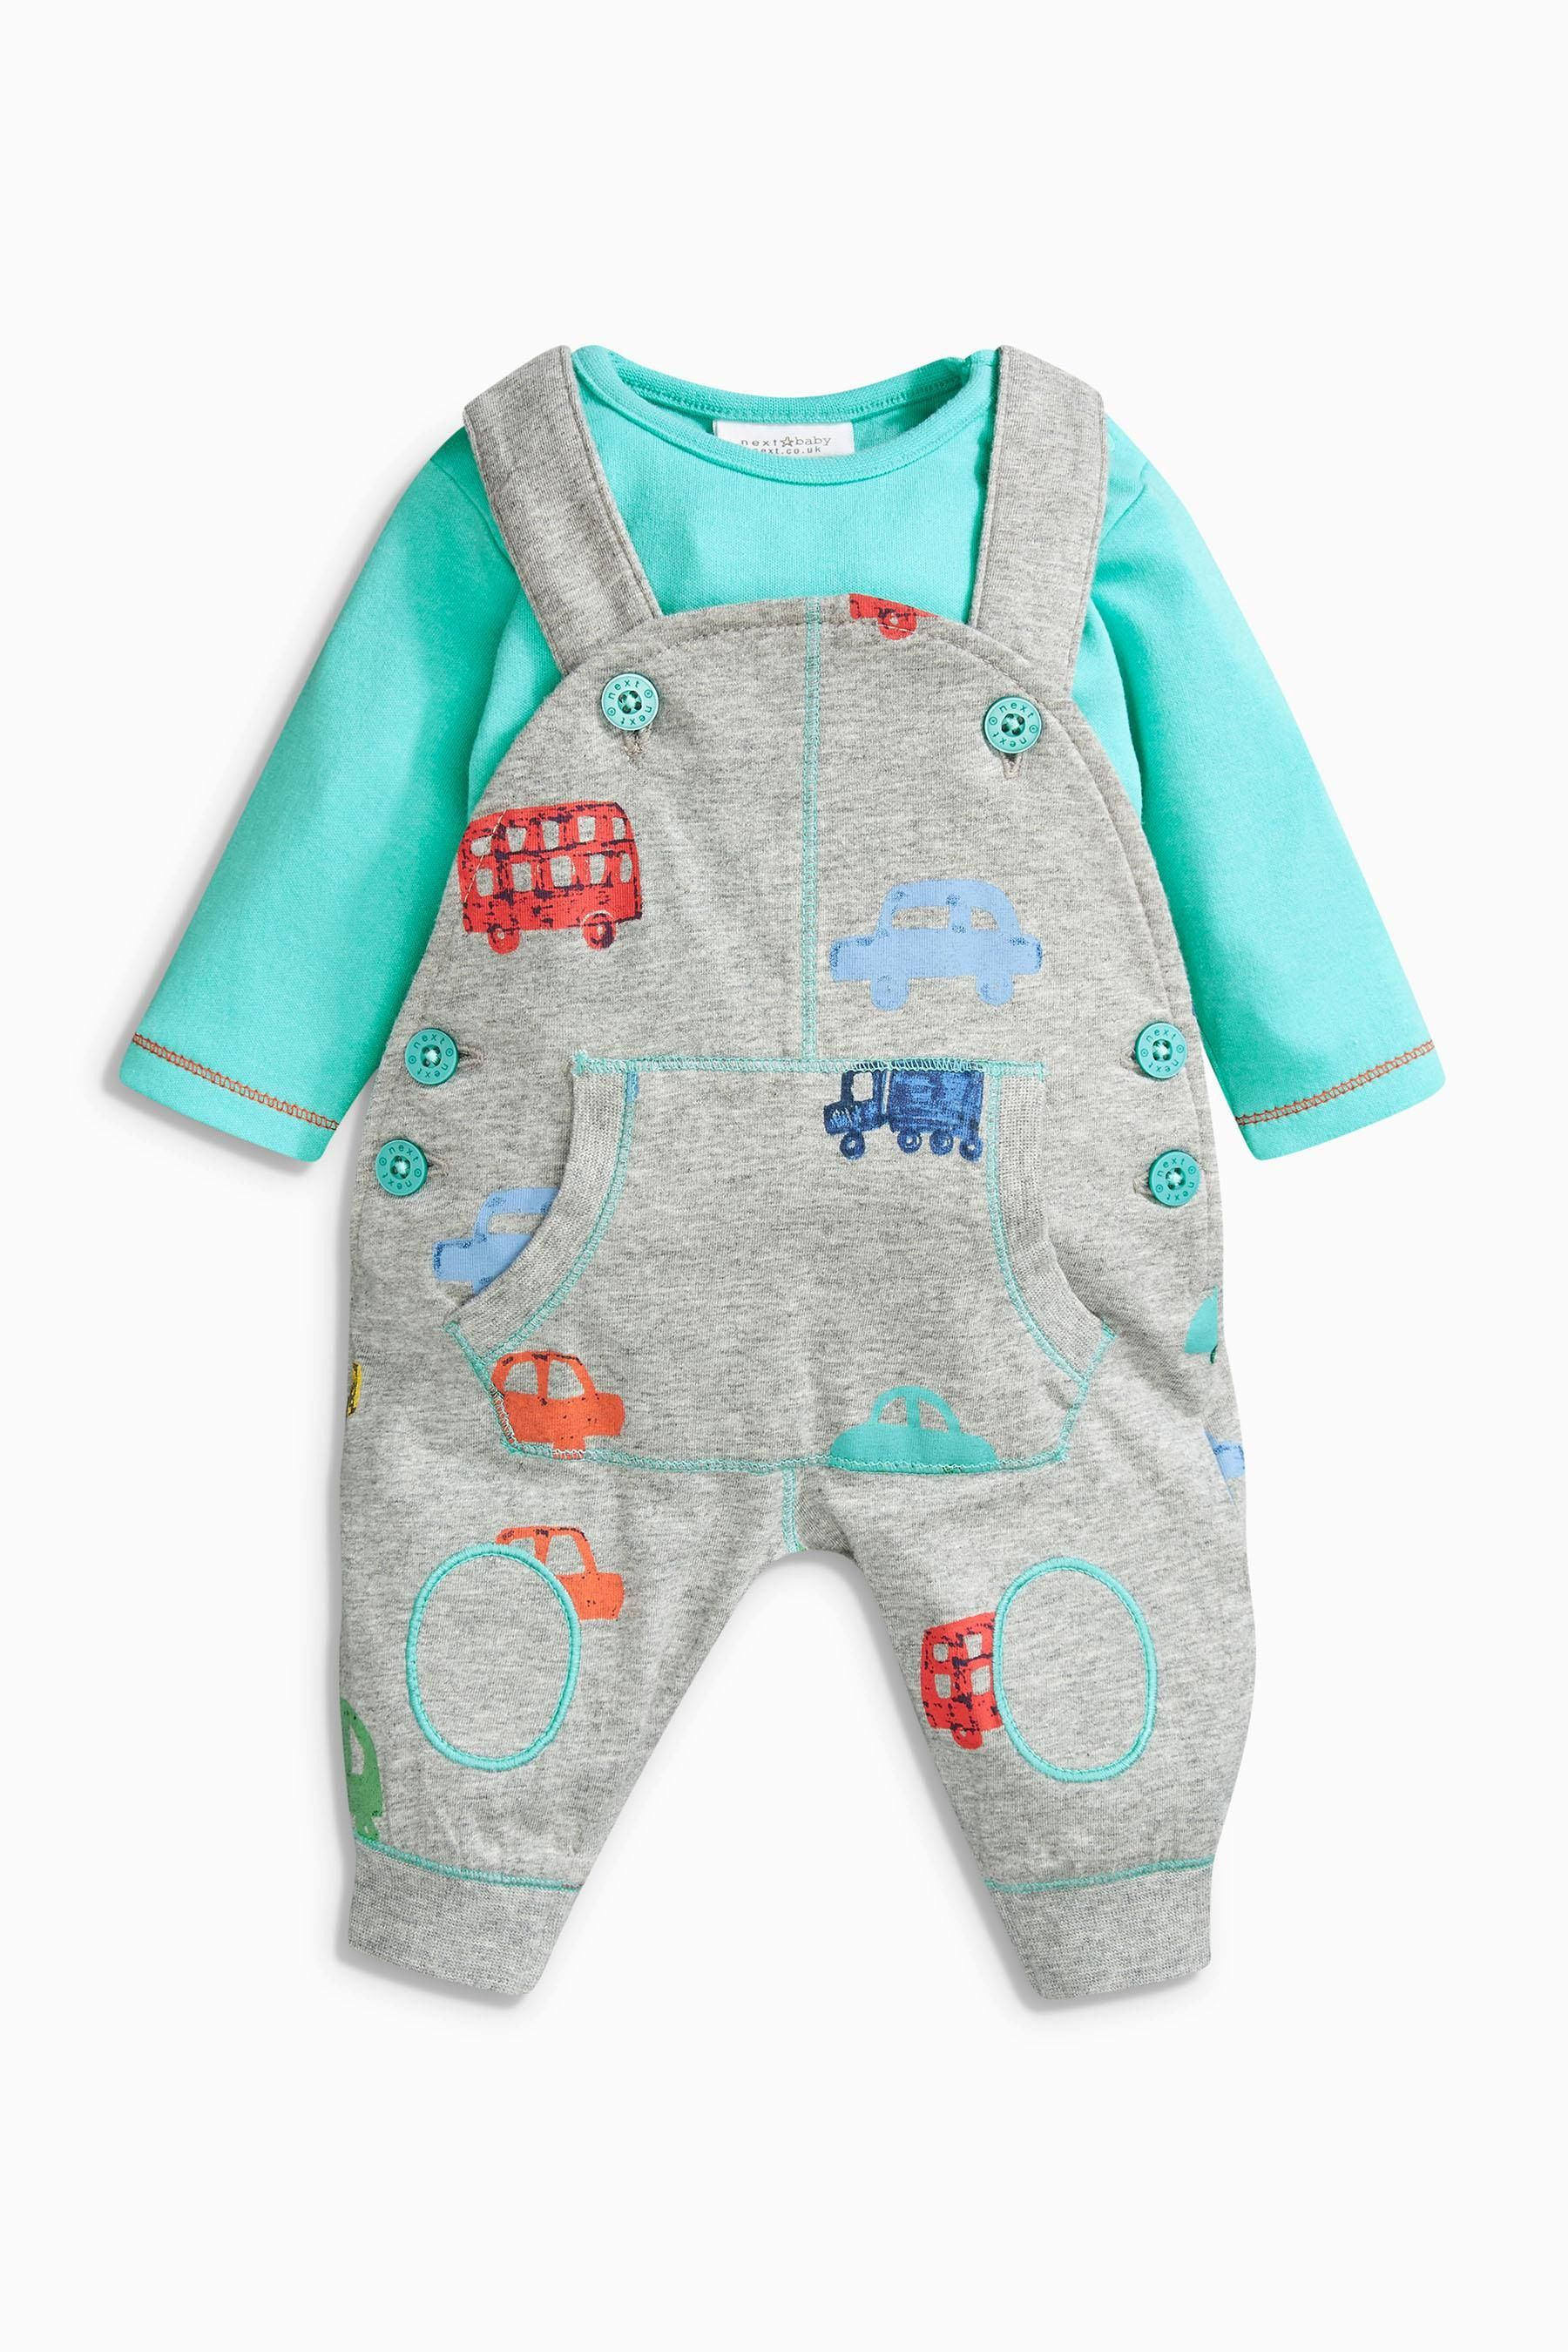 Baby pink dungaree dress  Buy Multi Printed Dungarees And Bodysuit Set mthsyrs from the